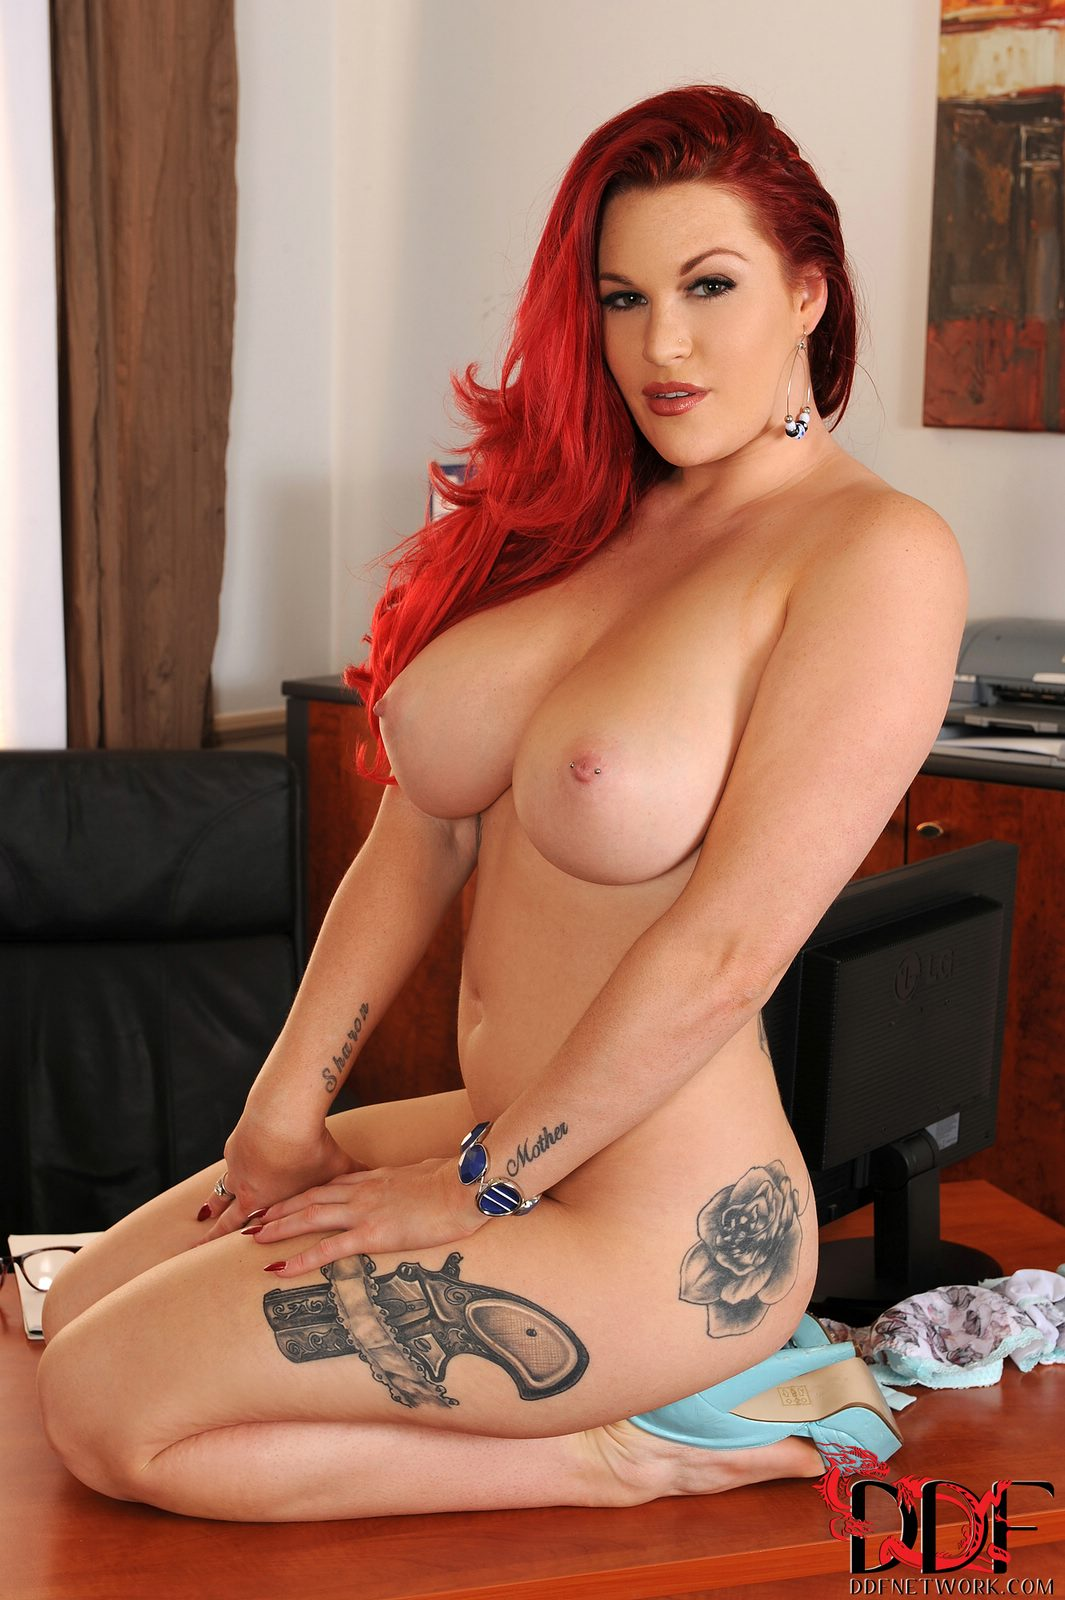 Donna red porn star